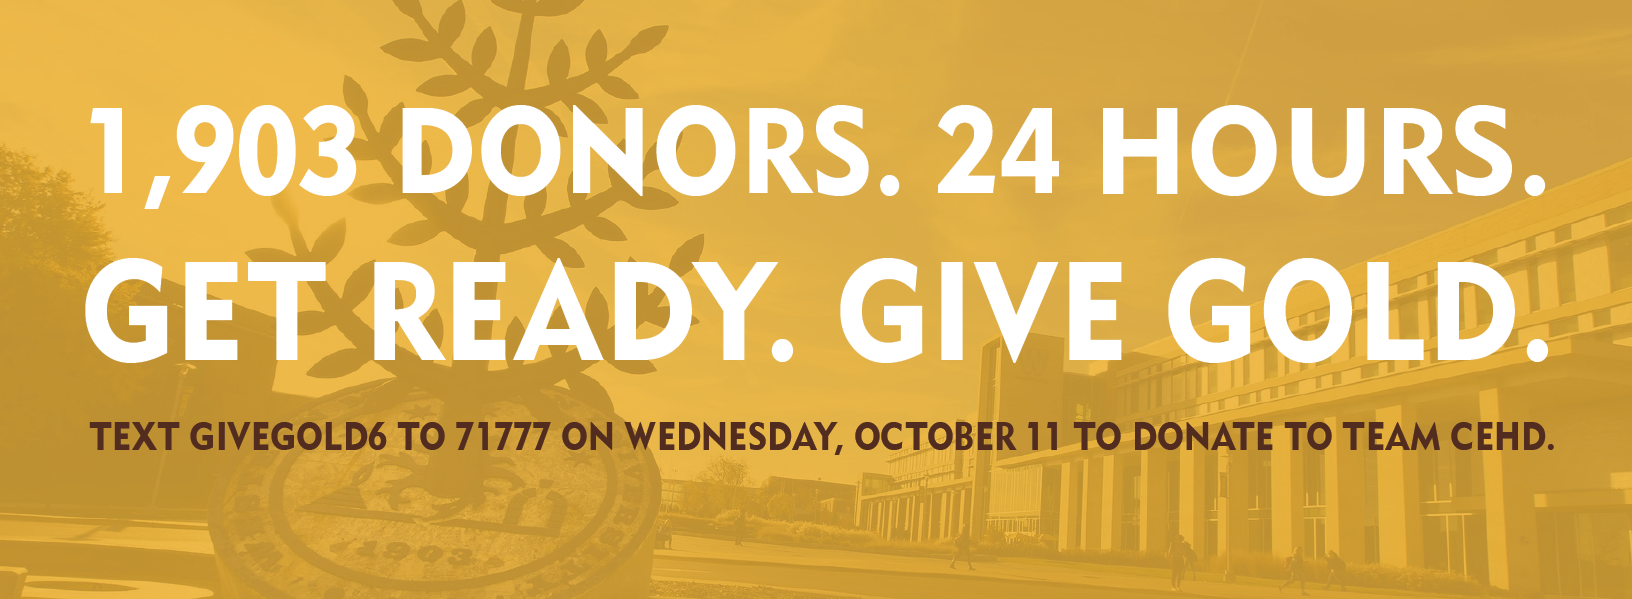 1903 donors. 24 hours. get ready. give gold. text givegold6 to 71777.